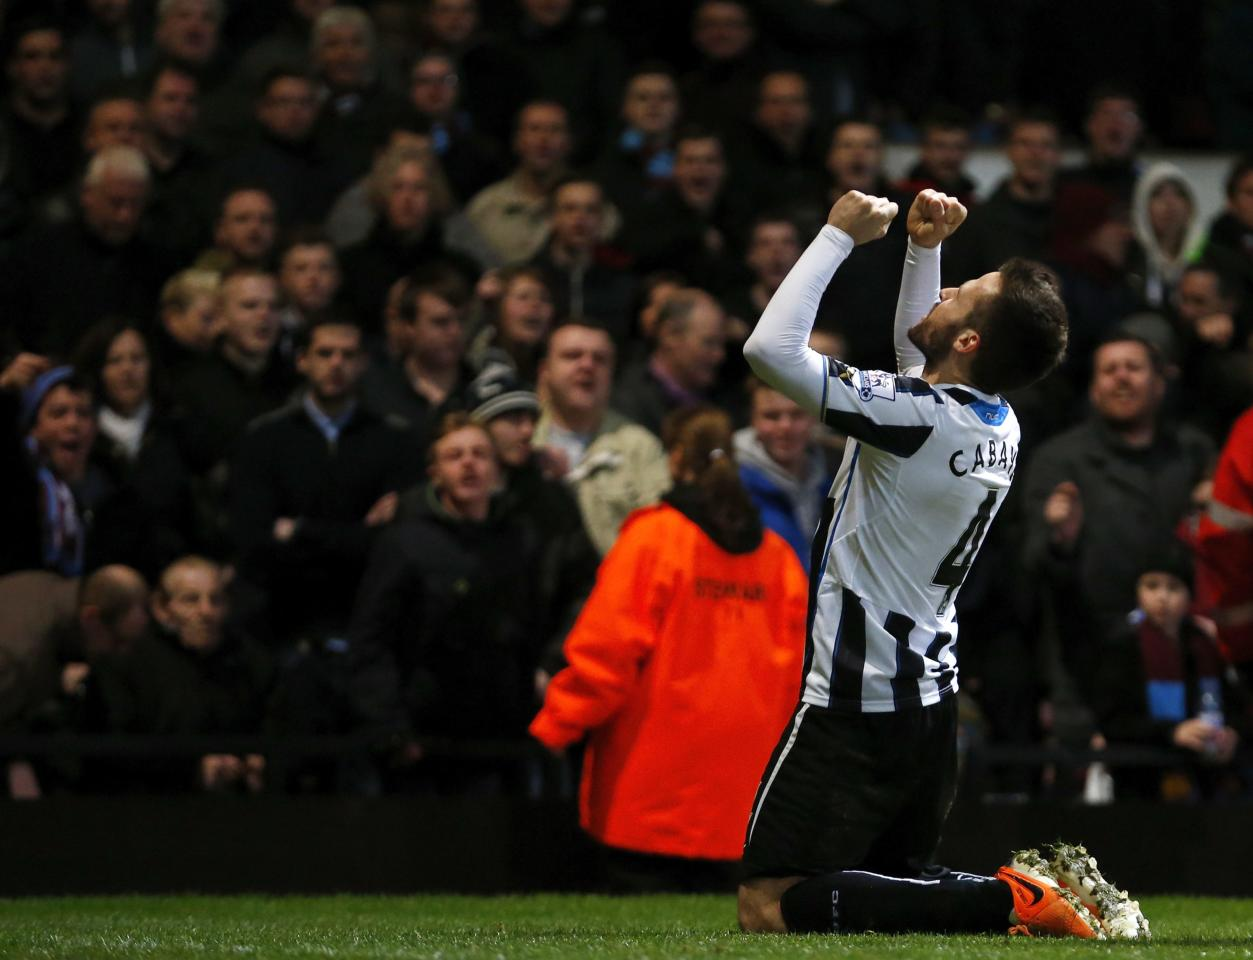 """Yohan Cabaye of Newcastle United celebrates scoring against West Ham United during their English Premier League soccer match at Upton Park, in London, January 18, 2014. REUTERS/Andrew Winning (BRITAIN - Tags: SPORT SOCCER) NO USE WITH UNAUTHORIZED AUDIO, VIDEO, DATA, FIXTURE LISTS, CLUB/LEAGUE LOGOS OR """"LIVE"""" SERVICES. ONLINE IN-MATCH USE LIMITED TO 45 IMAGES, NO VIDEO EMULATION. NO USE IN BETTING, GAMES OR SINGLE CLUB/LEAGUE/PLAYER PUBLICATIONS. FOR EDITORIAL USE ONLY. NOT FOR SALE FOR MARKETING OR ADVERTISING CAMPAIGNS"""